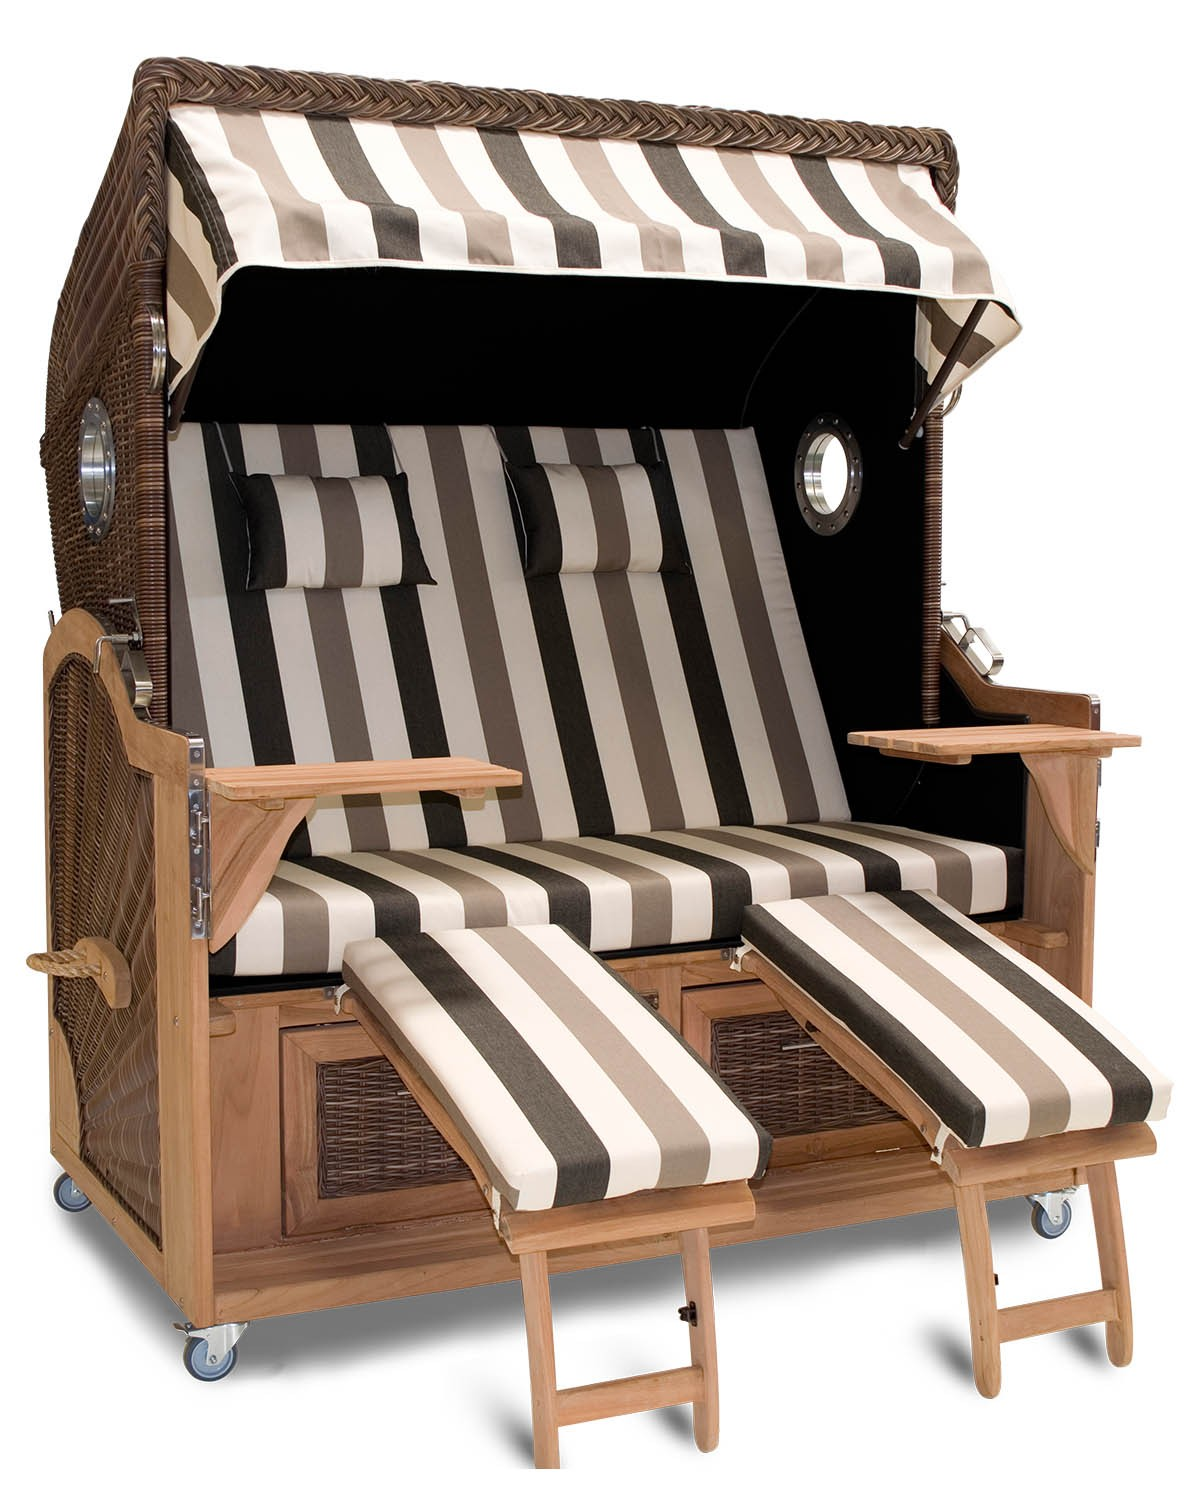 strandkorb outlet bremen rugbyclubeemland. Black Bedroom Furniture Sets. Home Design Ideas